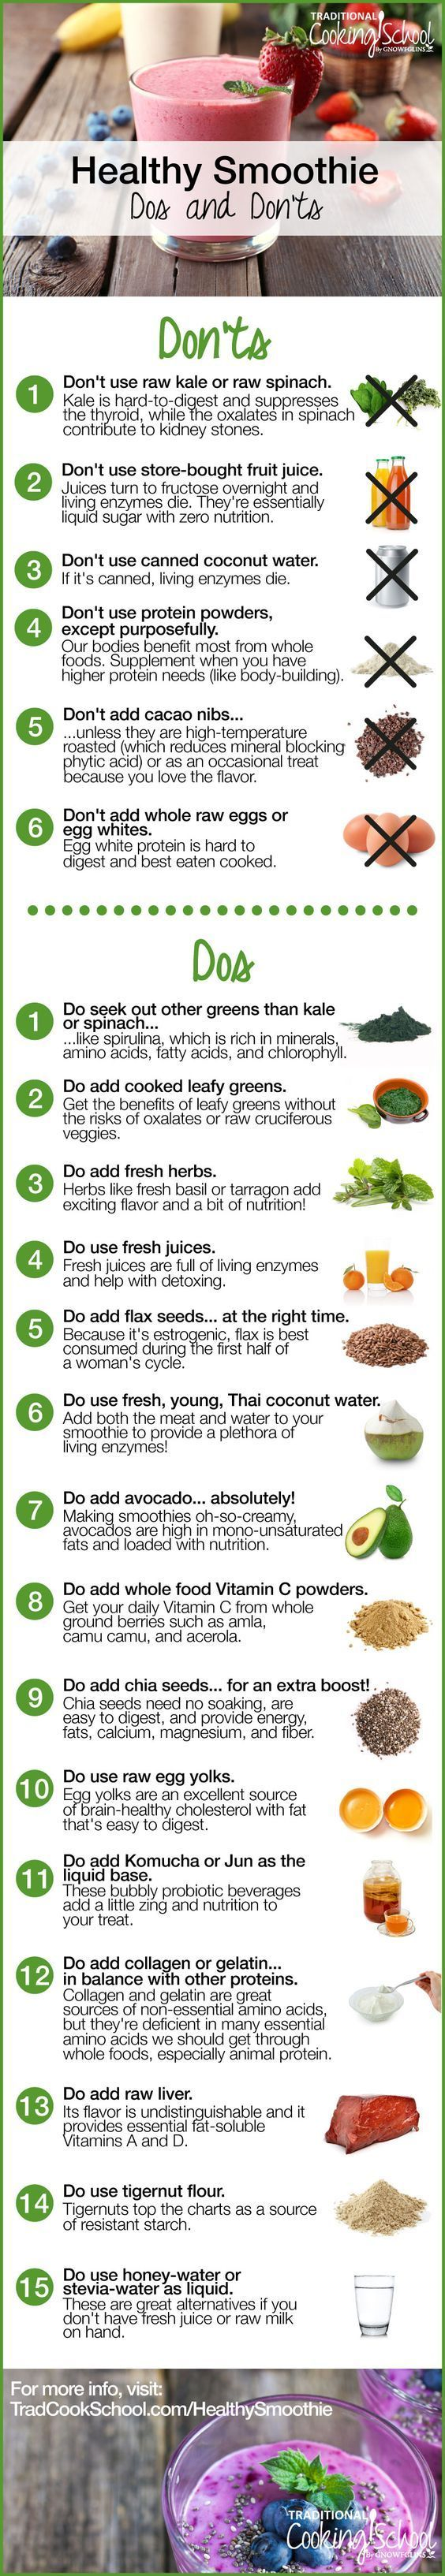 The Dos and Don'ts Of A Healthy Smoothie   Smoothies used to seem so easy! Then the green smoothie was introduced. Then coconut water and collagen. Yet these superfoods may not be all that they're cracked up to be. So what makes a smoothie a truly healthy snack? Here's how to make a healthy smoothie -- some easy DOs and DON'Ts to make your smoothies nourishing, beyond any doubt.   TraditionalCookingSchool.com